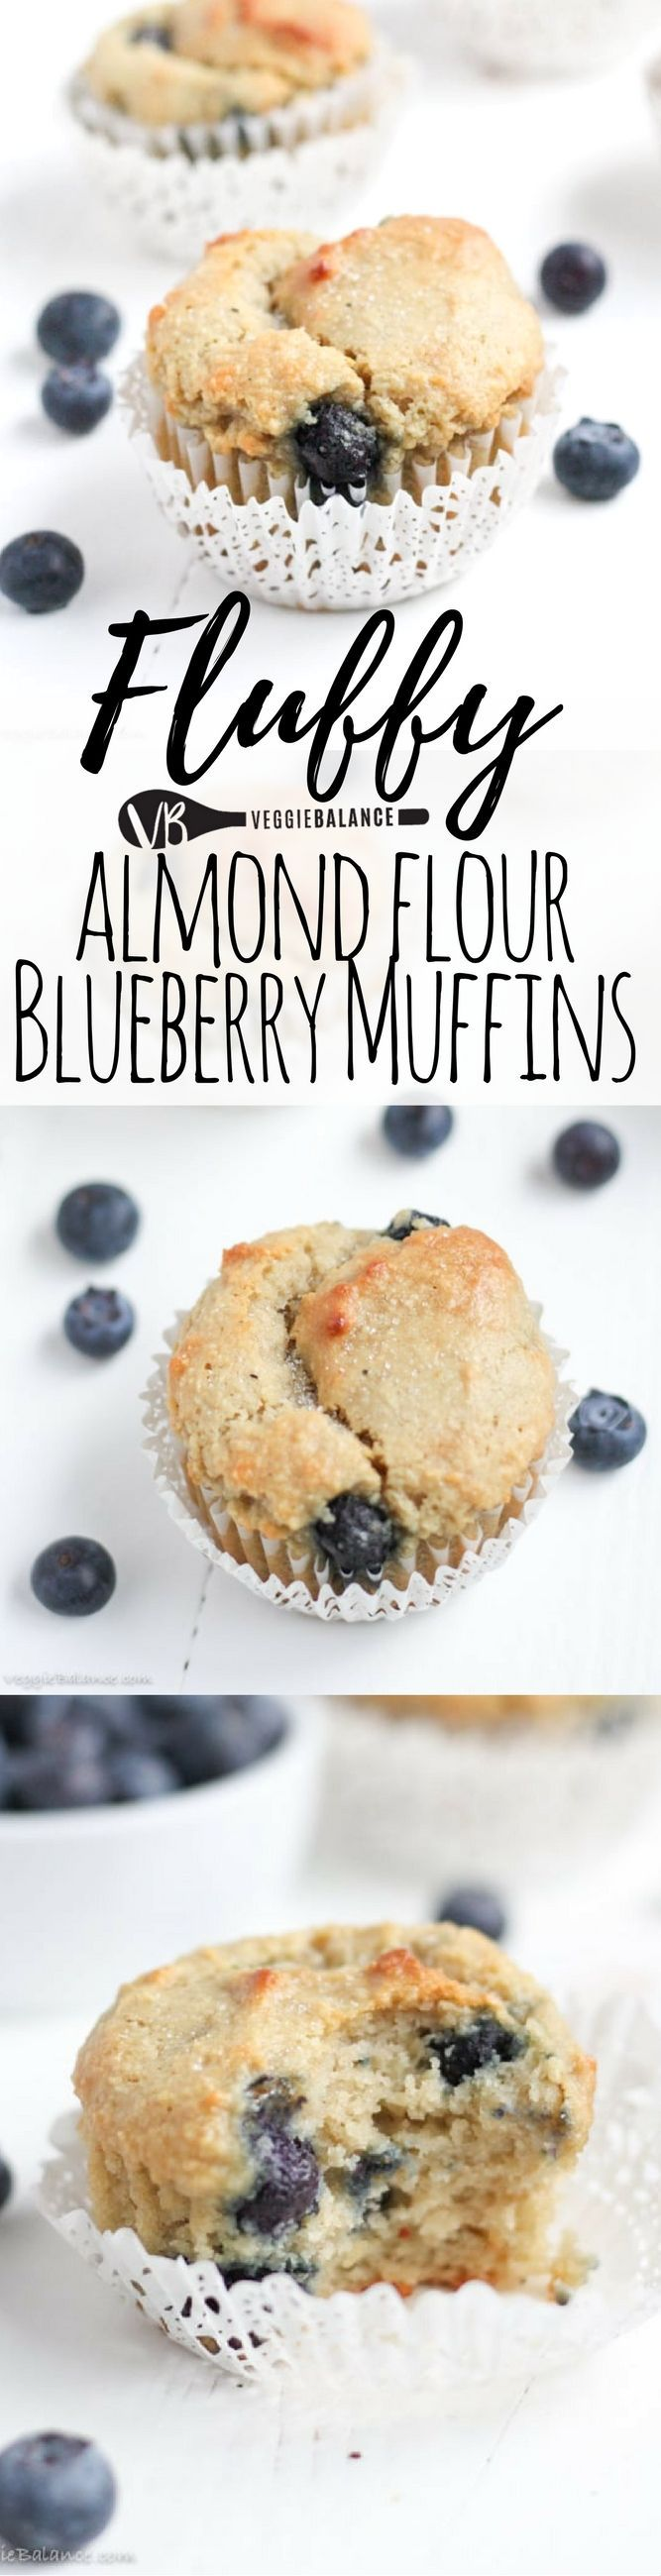 Gluten Free Blueberry Muffins with protein packed almond flour. Just 7-Ingredients, gluten-free, refined sugar-free, dairy-free, and low-sugar. Yum